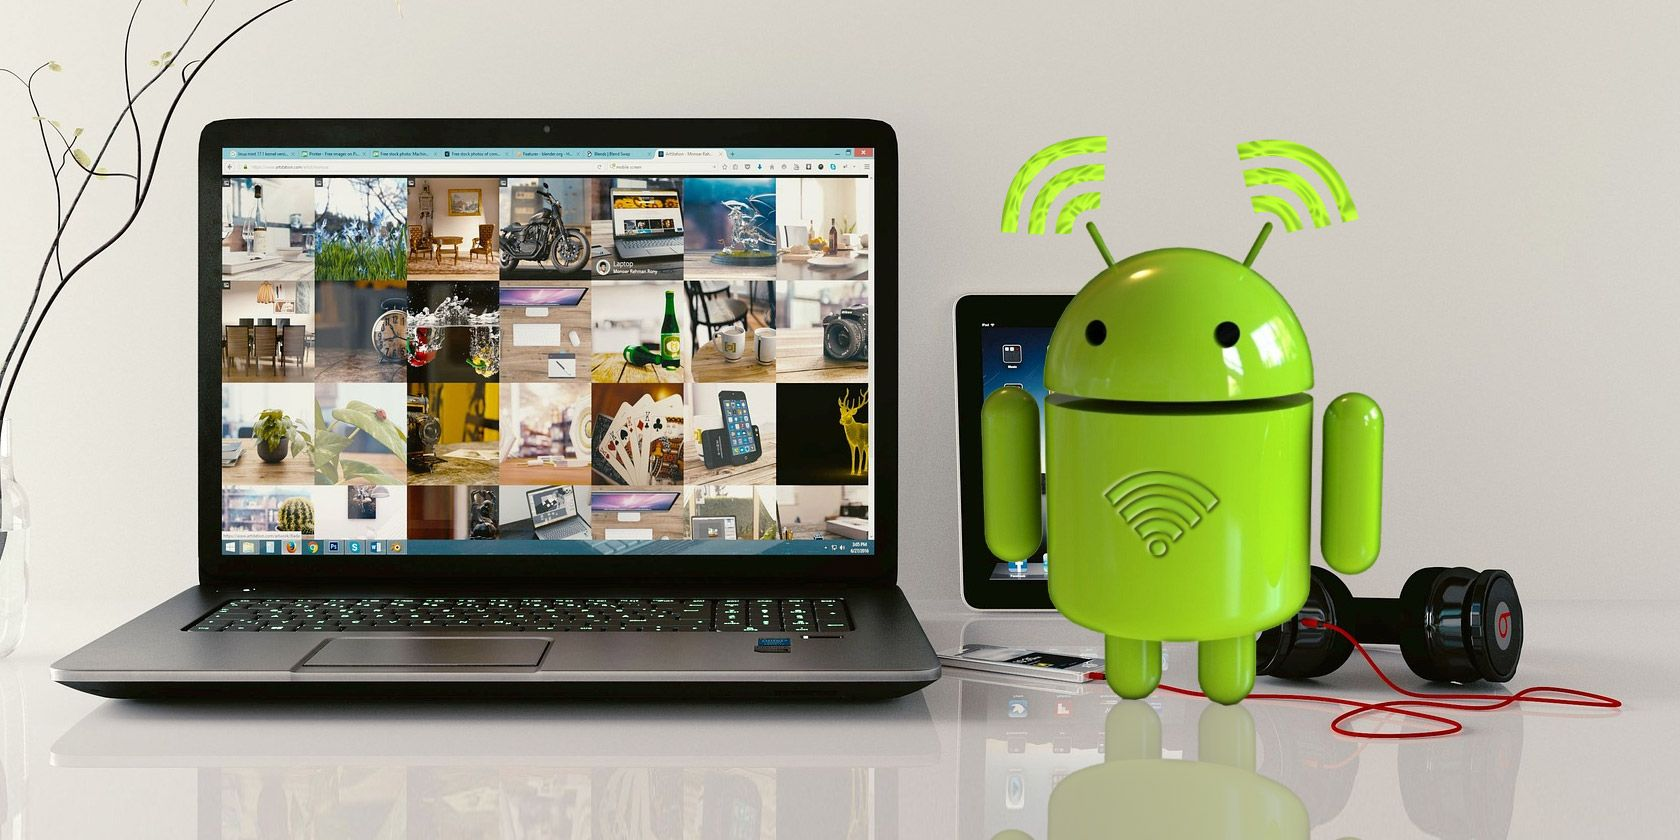 How to Use Your Android Phone as a Wireless Router